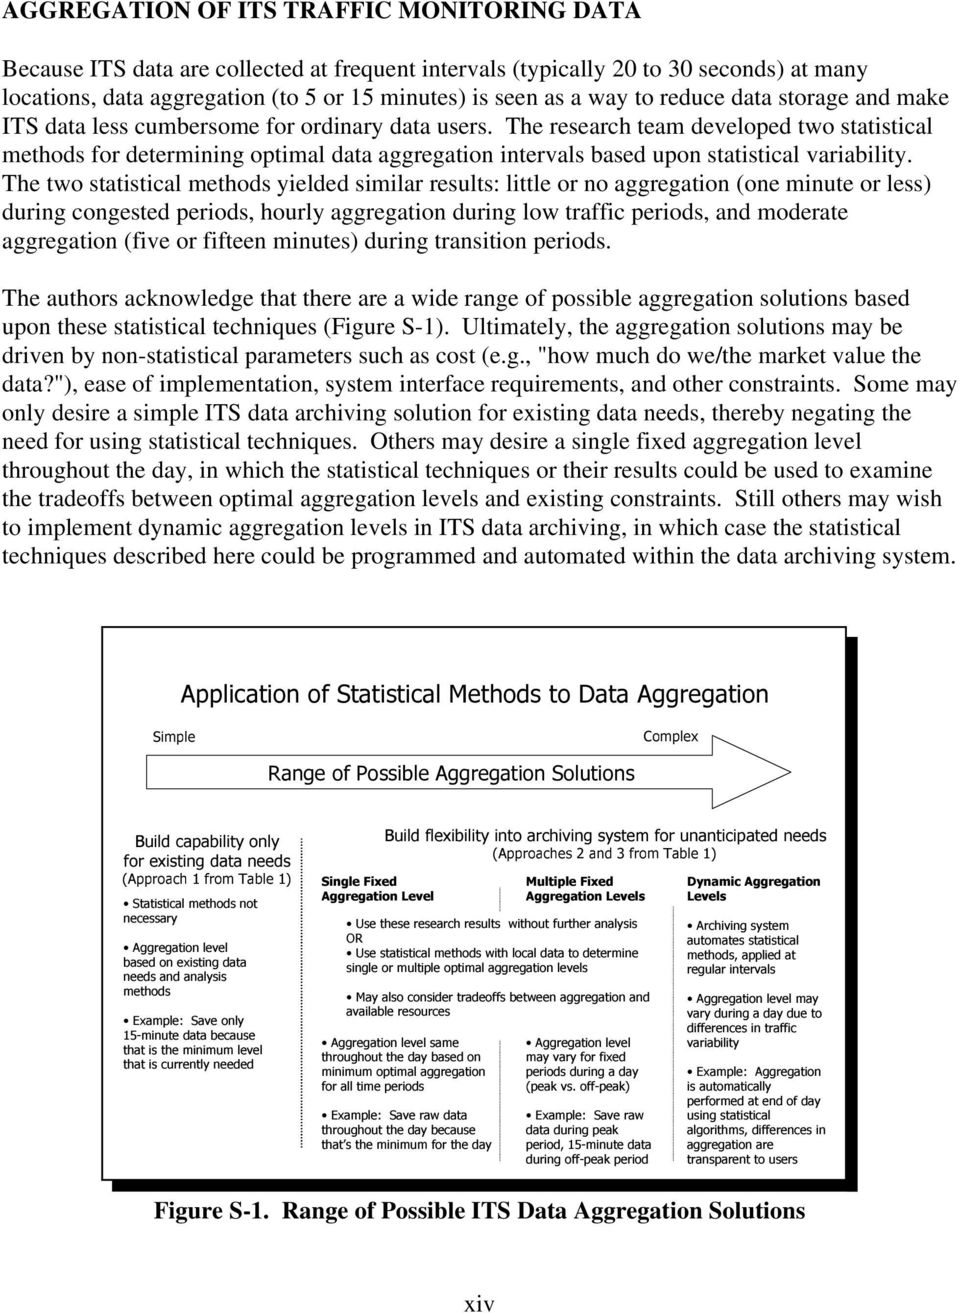 The research team developed two statistical methods for determining optimal data aggregation intervals based upon statistical variability.